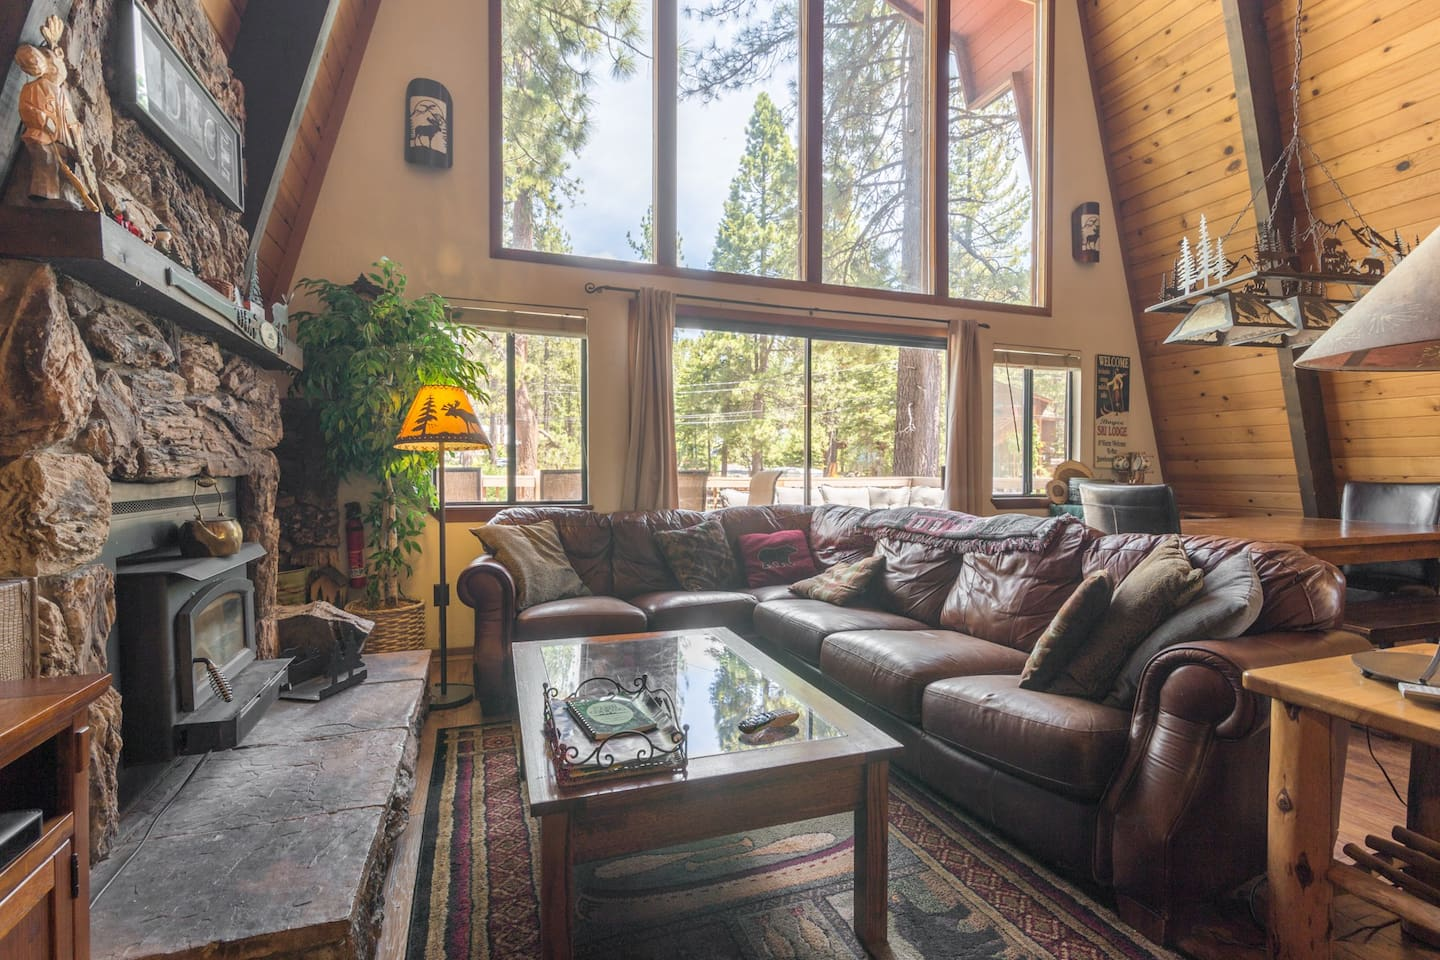 Rest easy and enjoy this austere woodland cabin.  You're in the very heart of North Lake Tahoe!